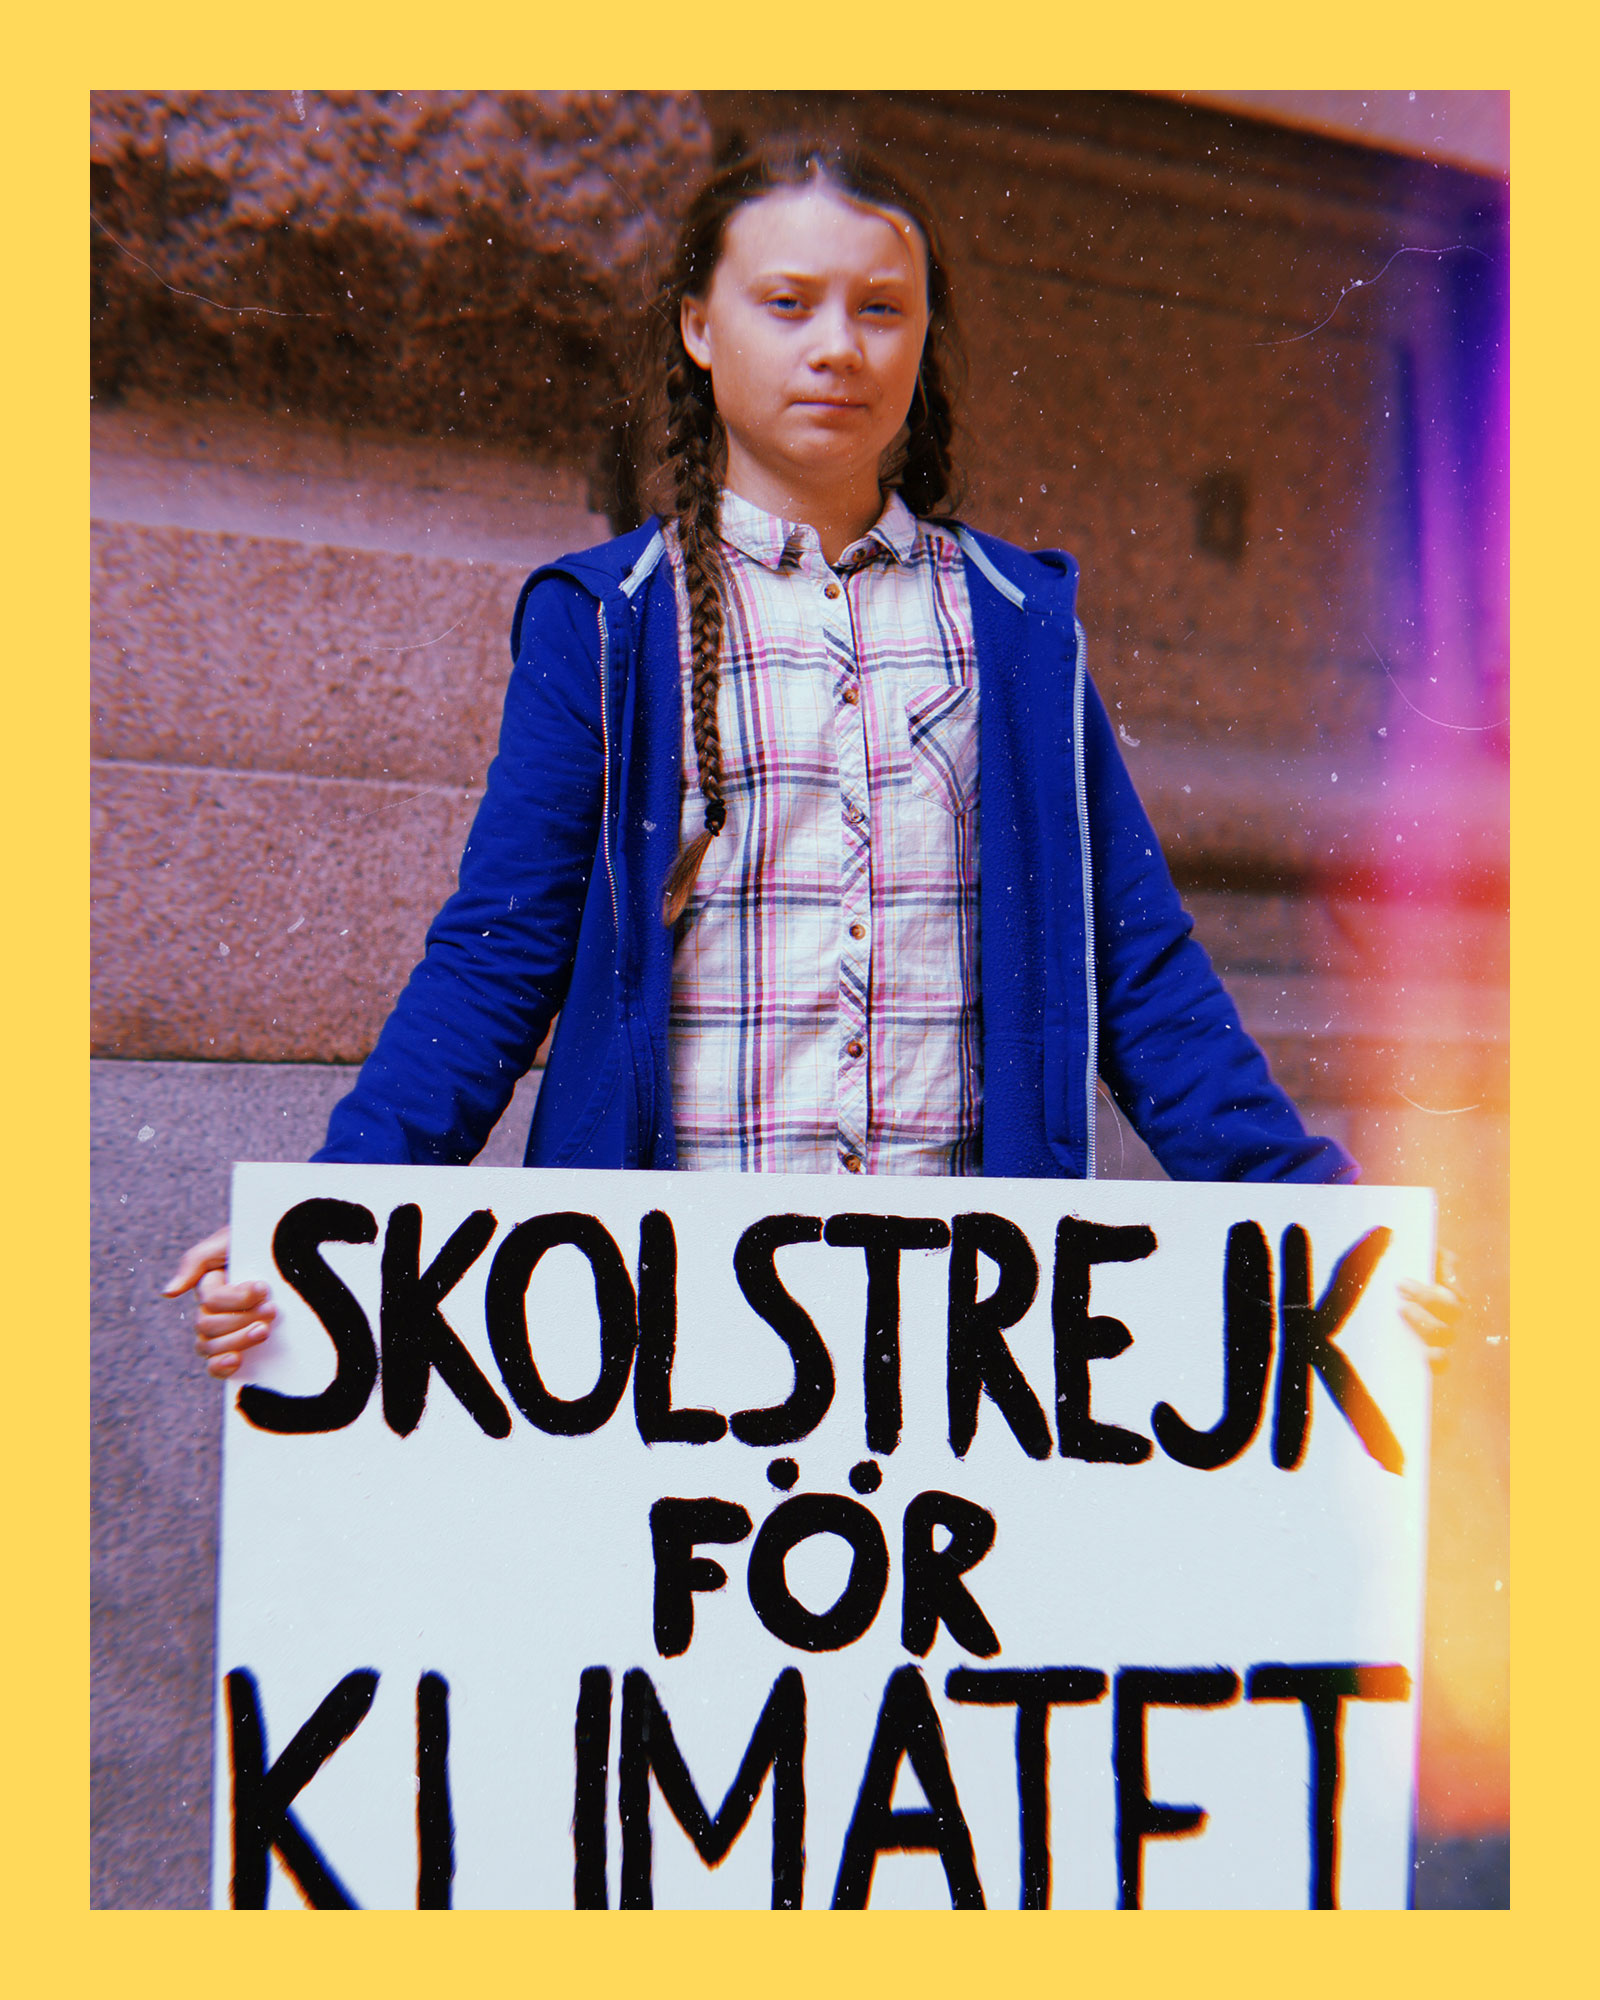 photo of climate activist, Greta Thunberg, standing outside, wearing a blue hoodie and plaid shirt while holding a climate strike poster